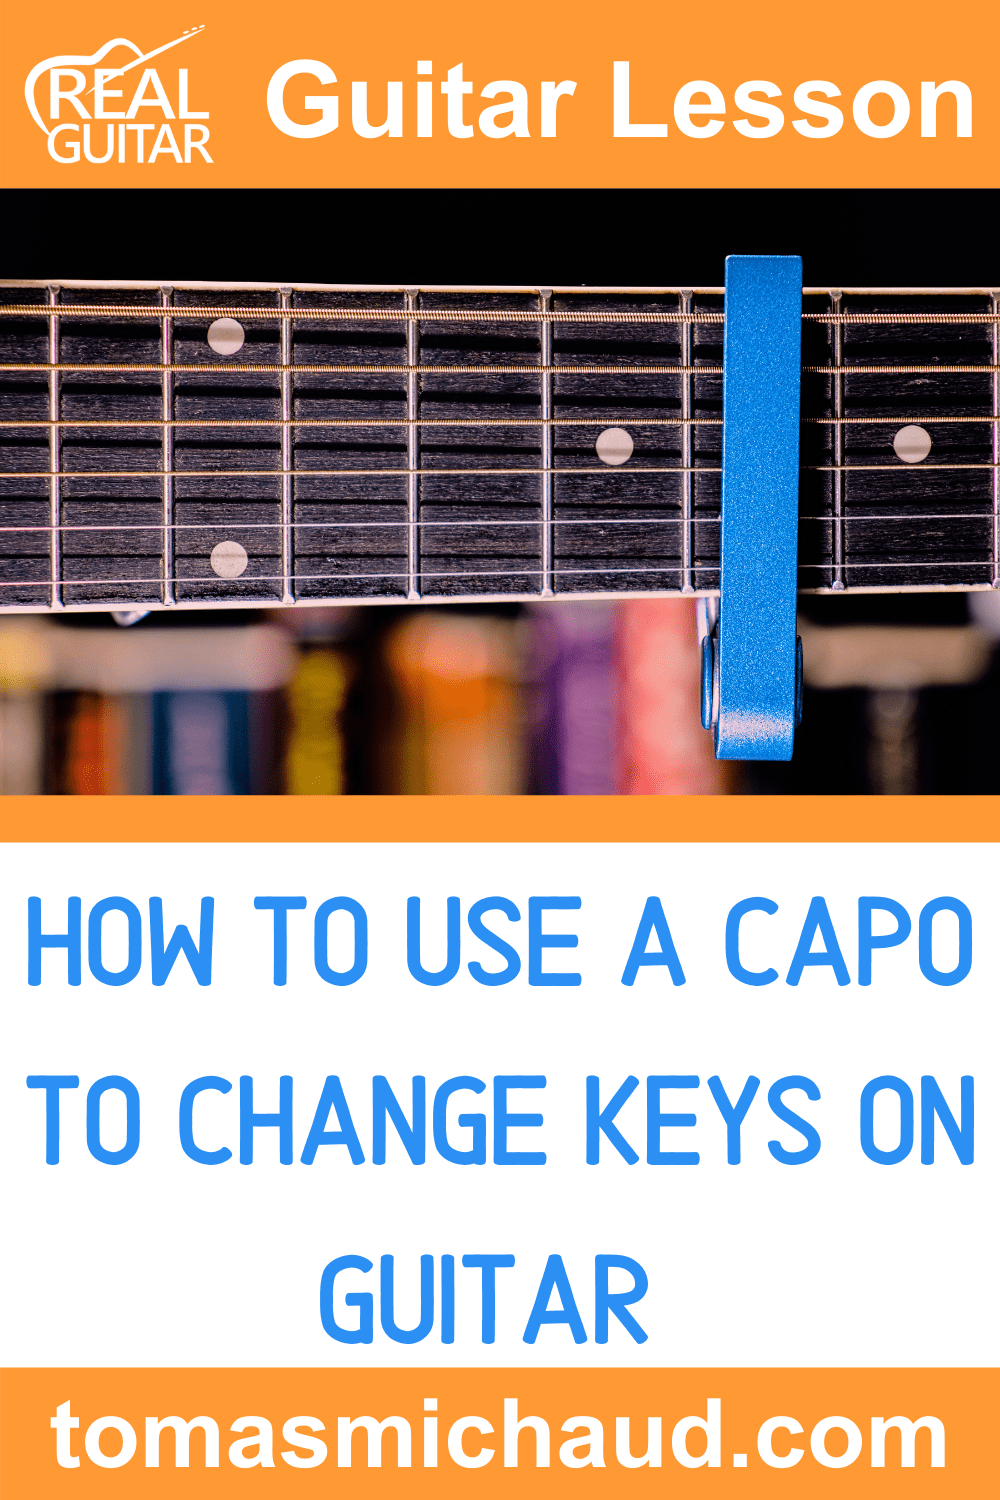 How to Use a Capo to Change Keys on Guitar